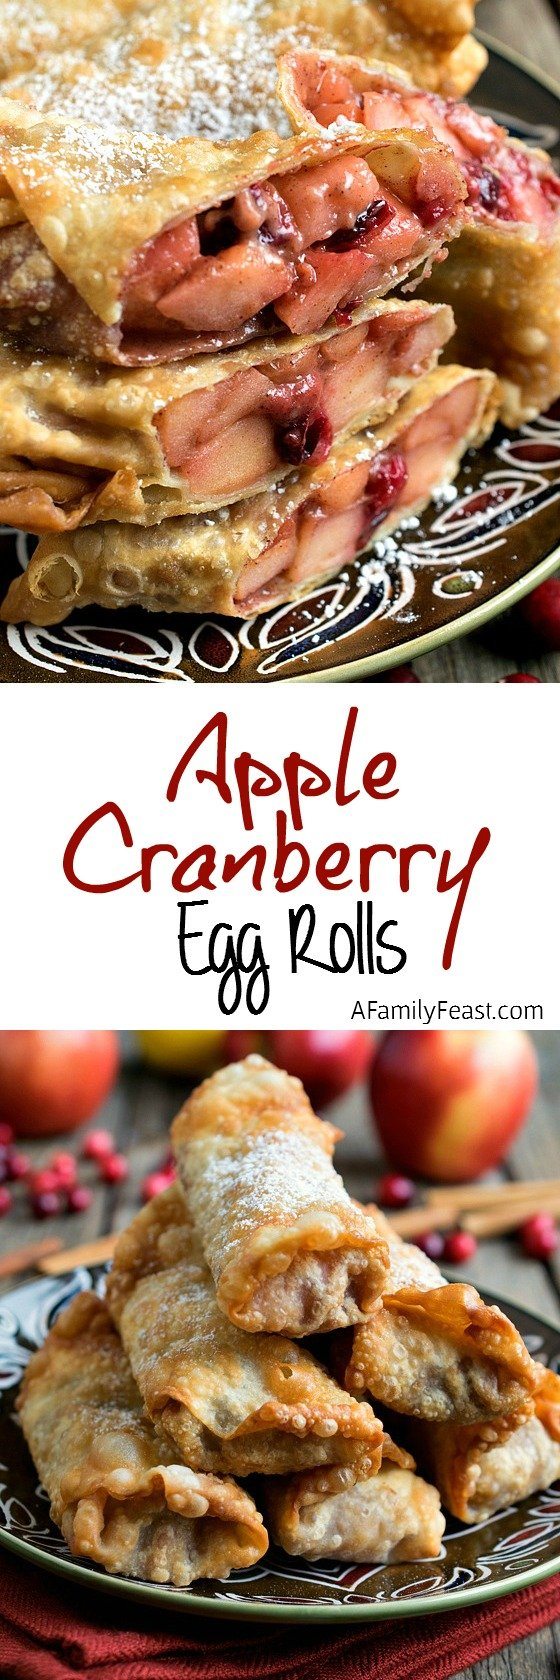 A delicious twist on classic apple pie flavors! These apple cranberry egg rolls are addictively delicious!